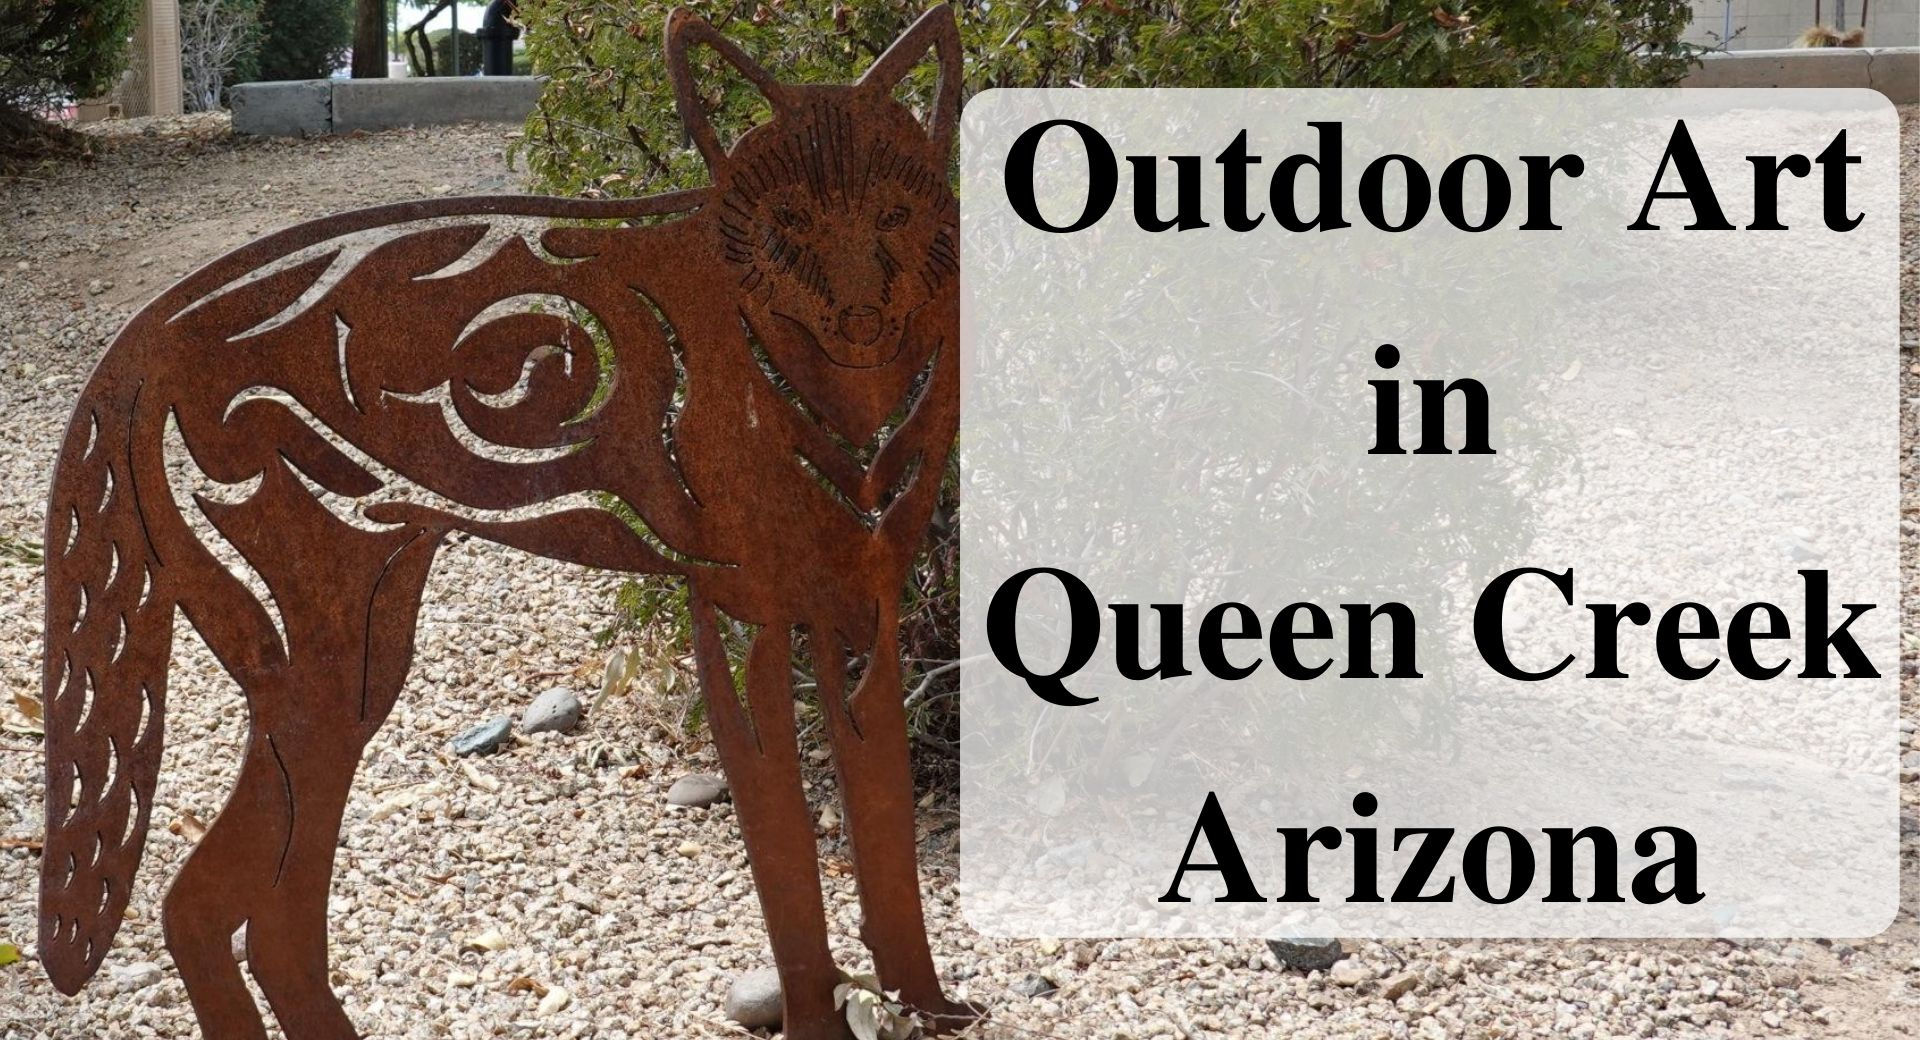 Outdoor Art in Queen Creek, Arizona Forever sabbatical